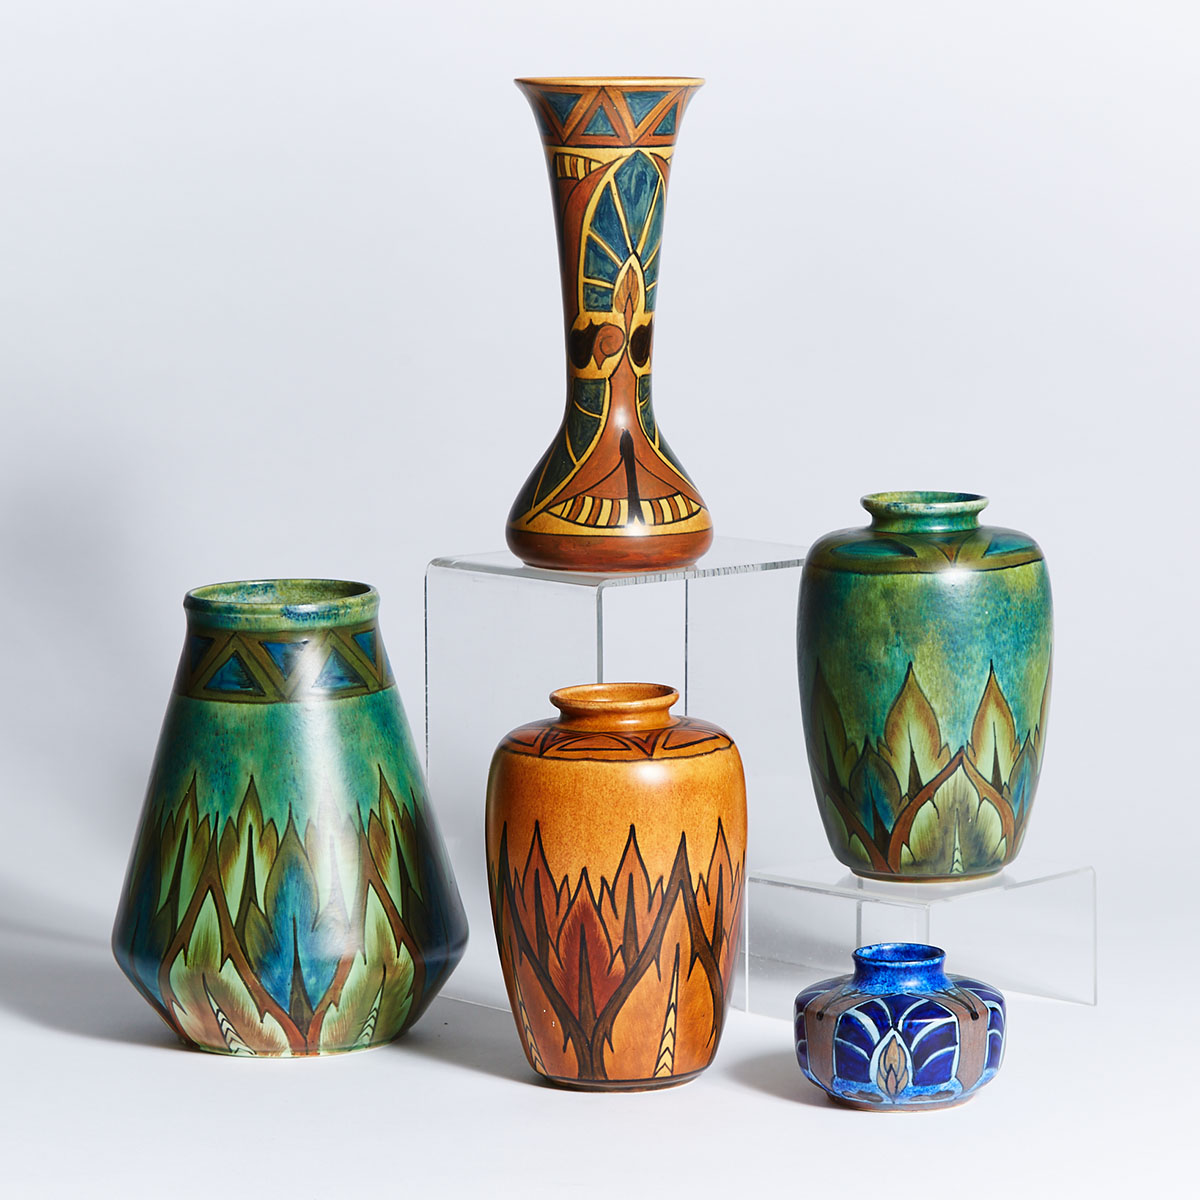 Five Clews 'Chameleon Ware' Vases, early 20th century